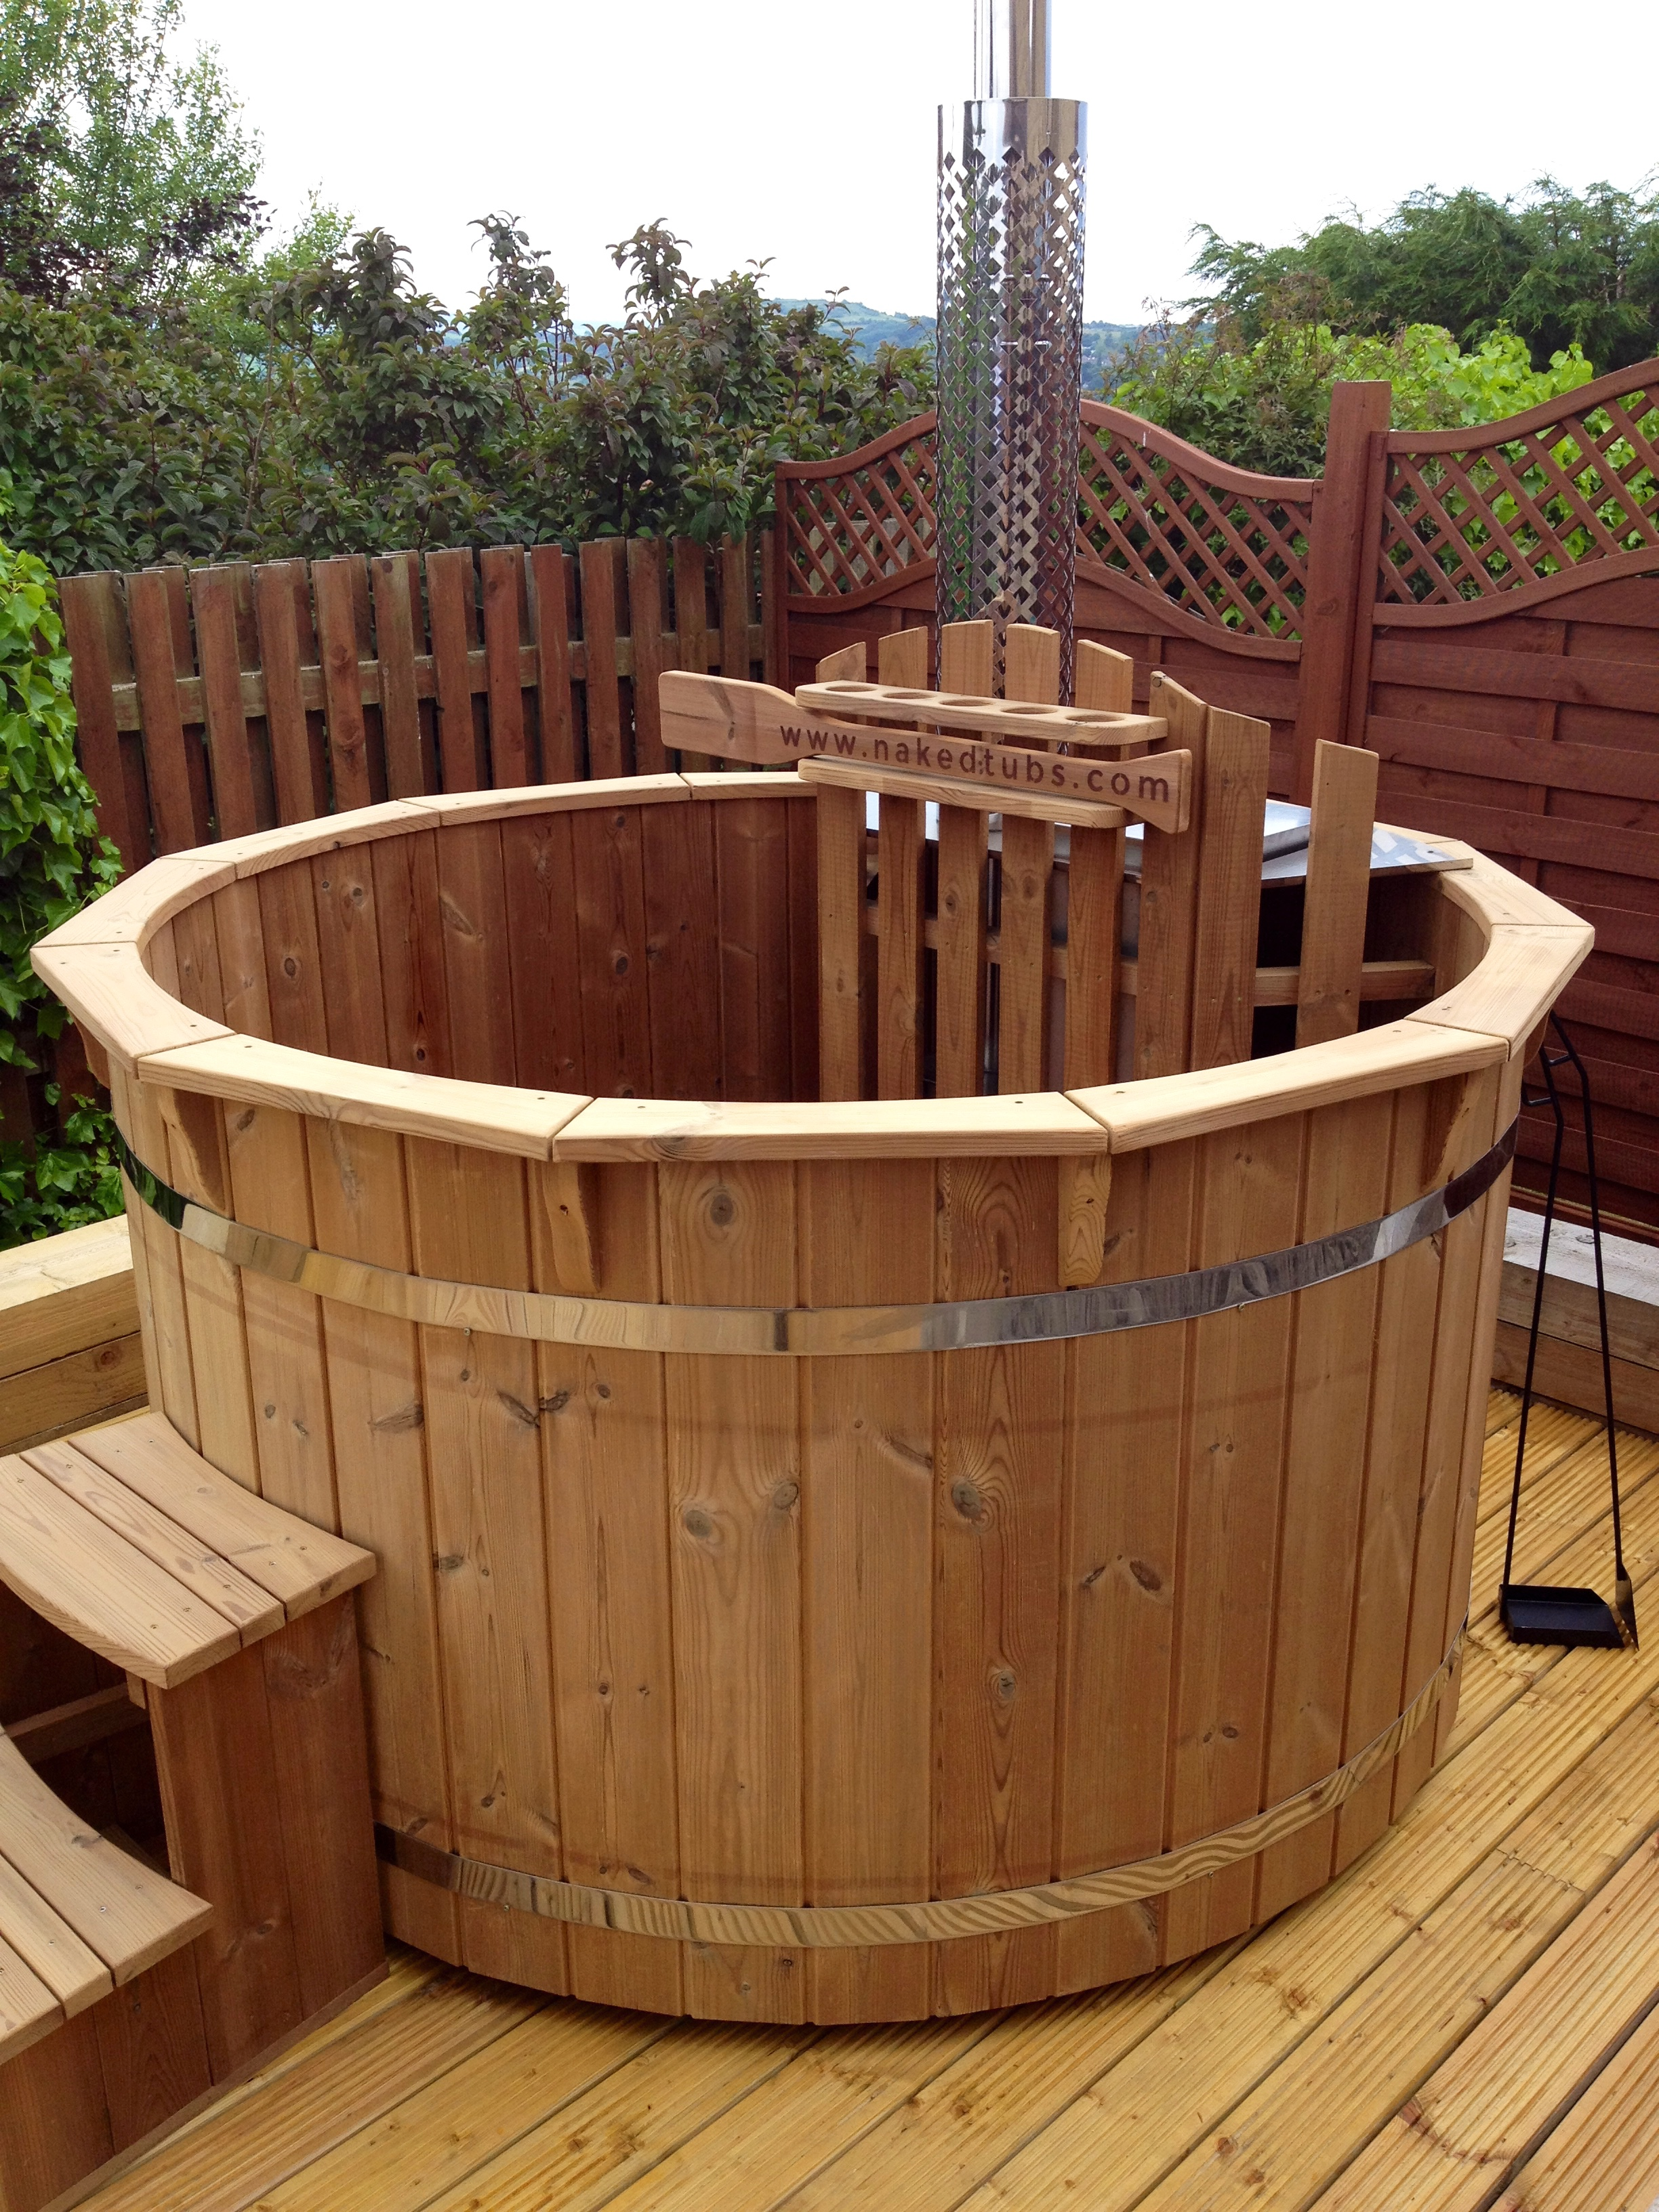 Naked Flame Eco Tub 1.8m